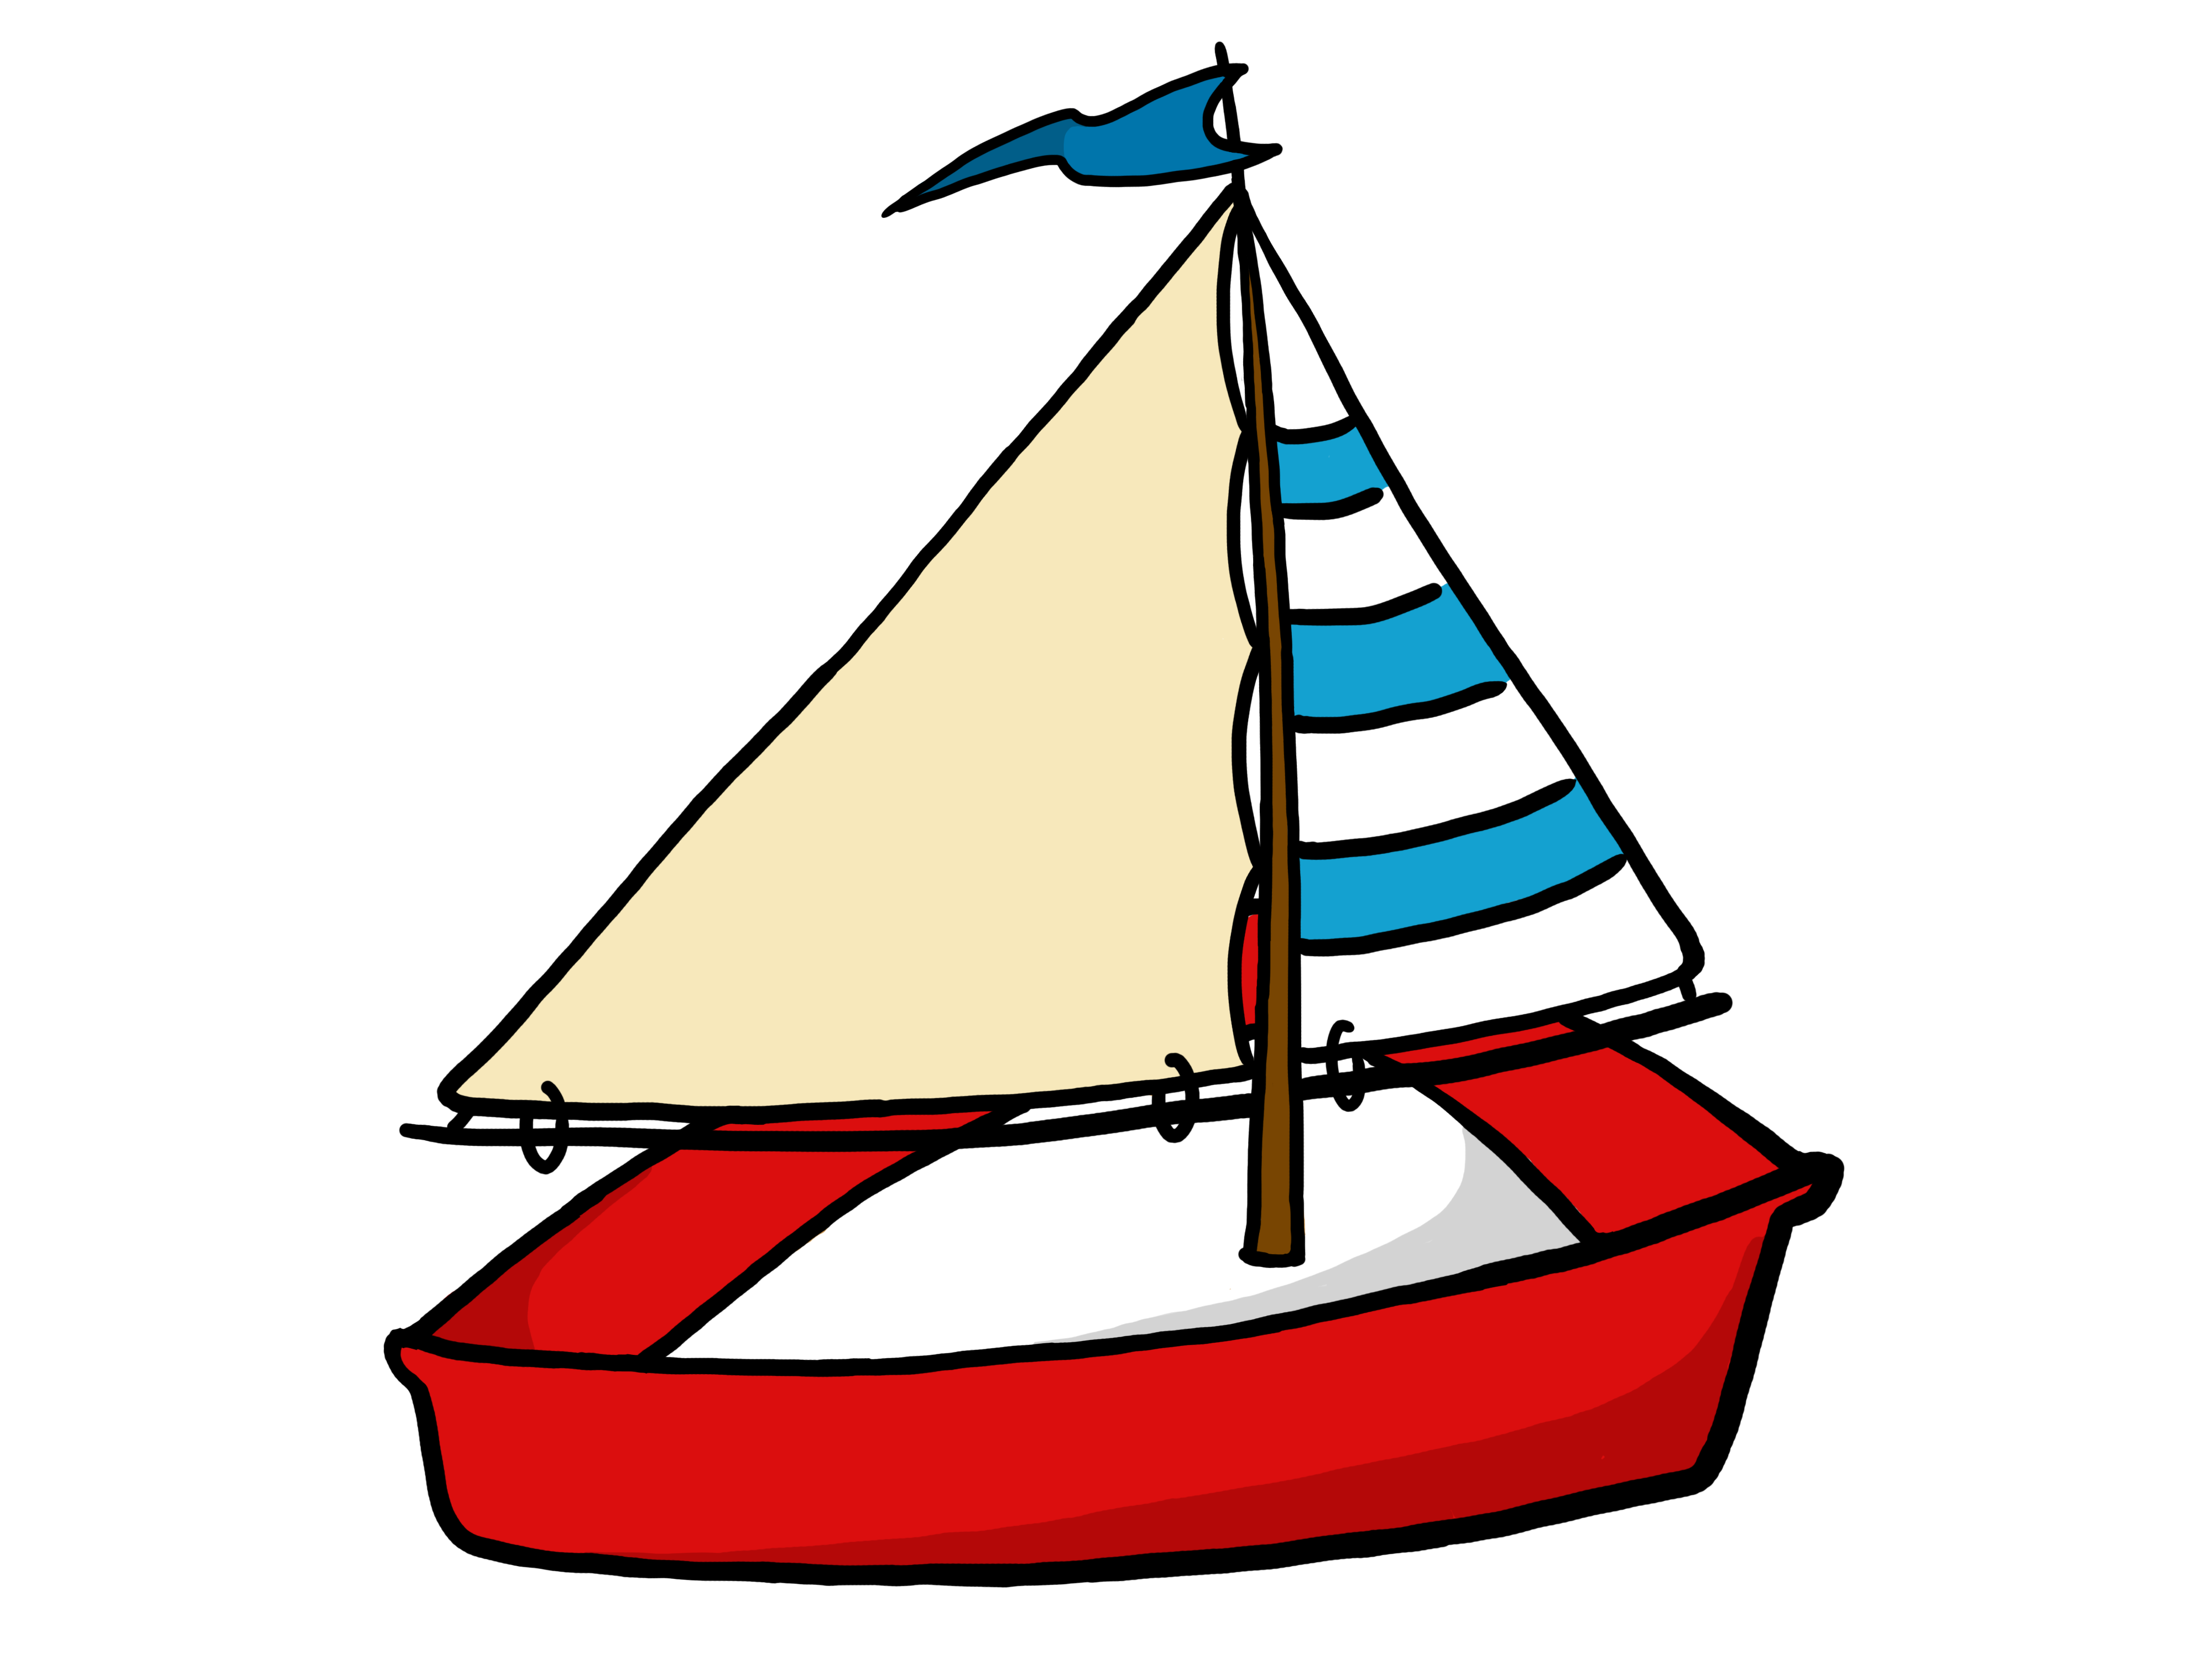 Boating Clipart Free Clipart Images-Boating clipart free clipart images-0